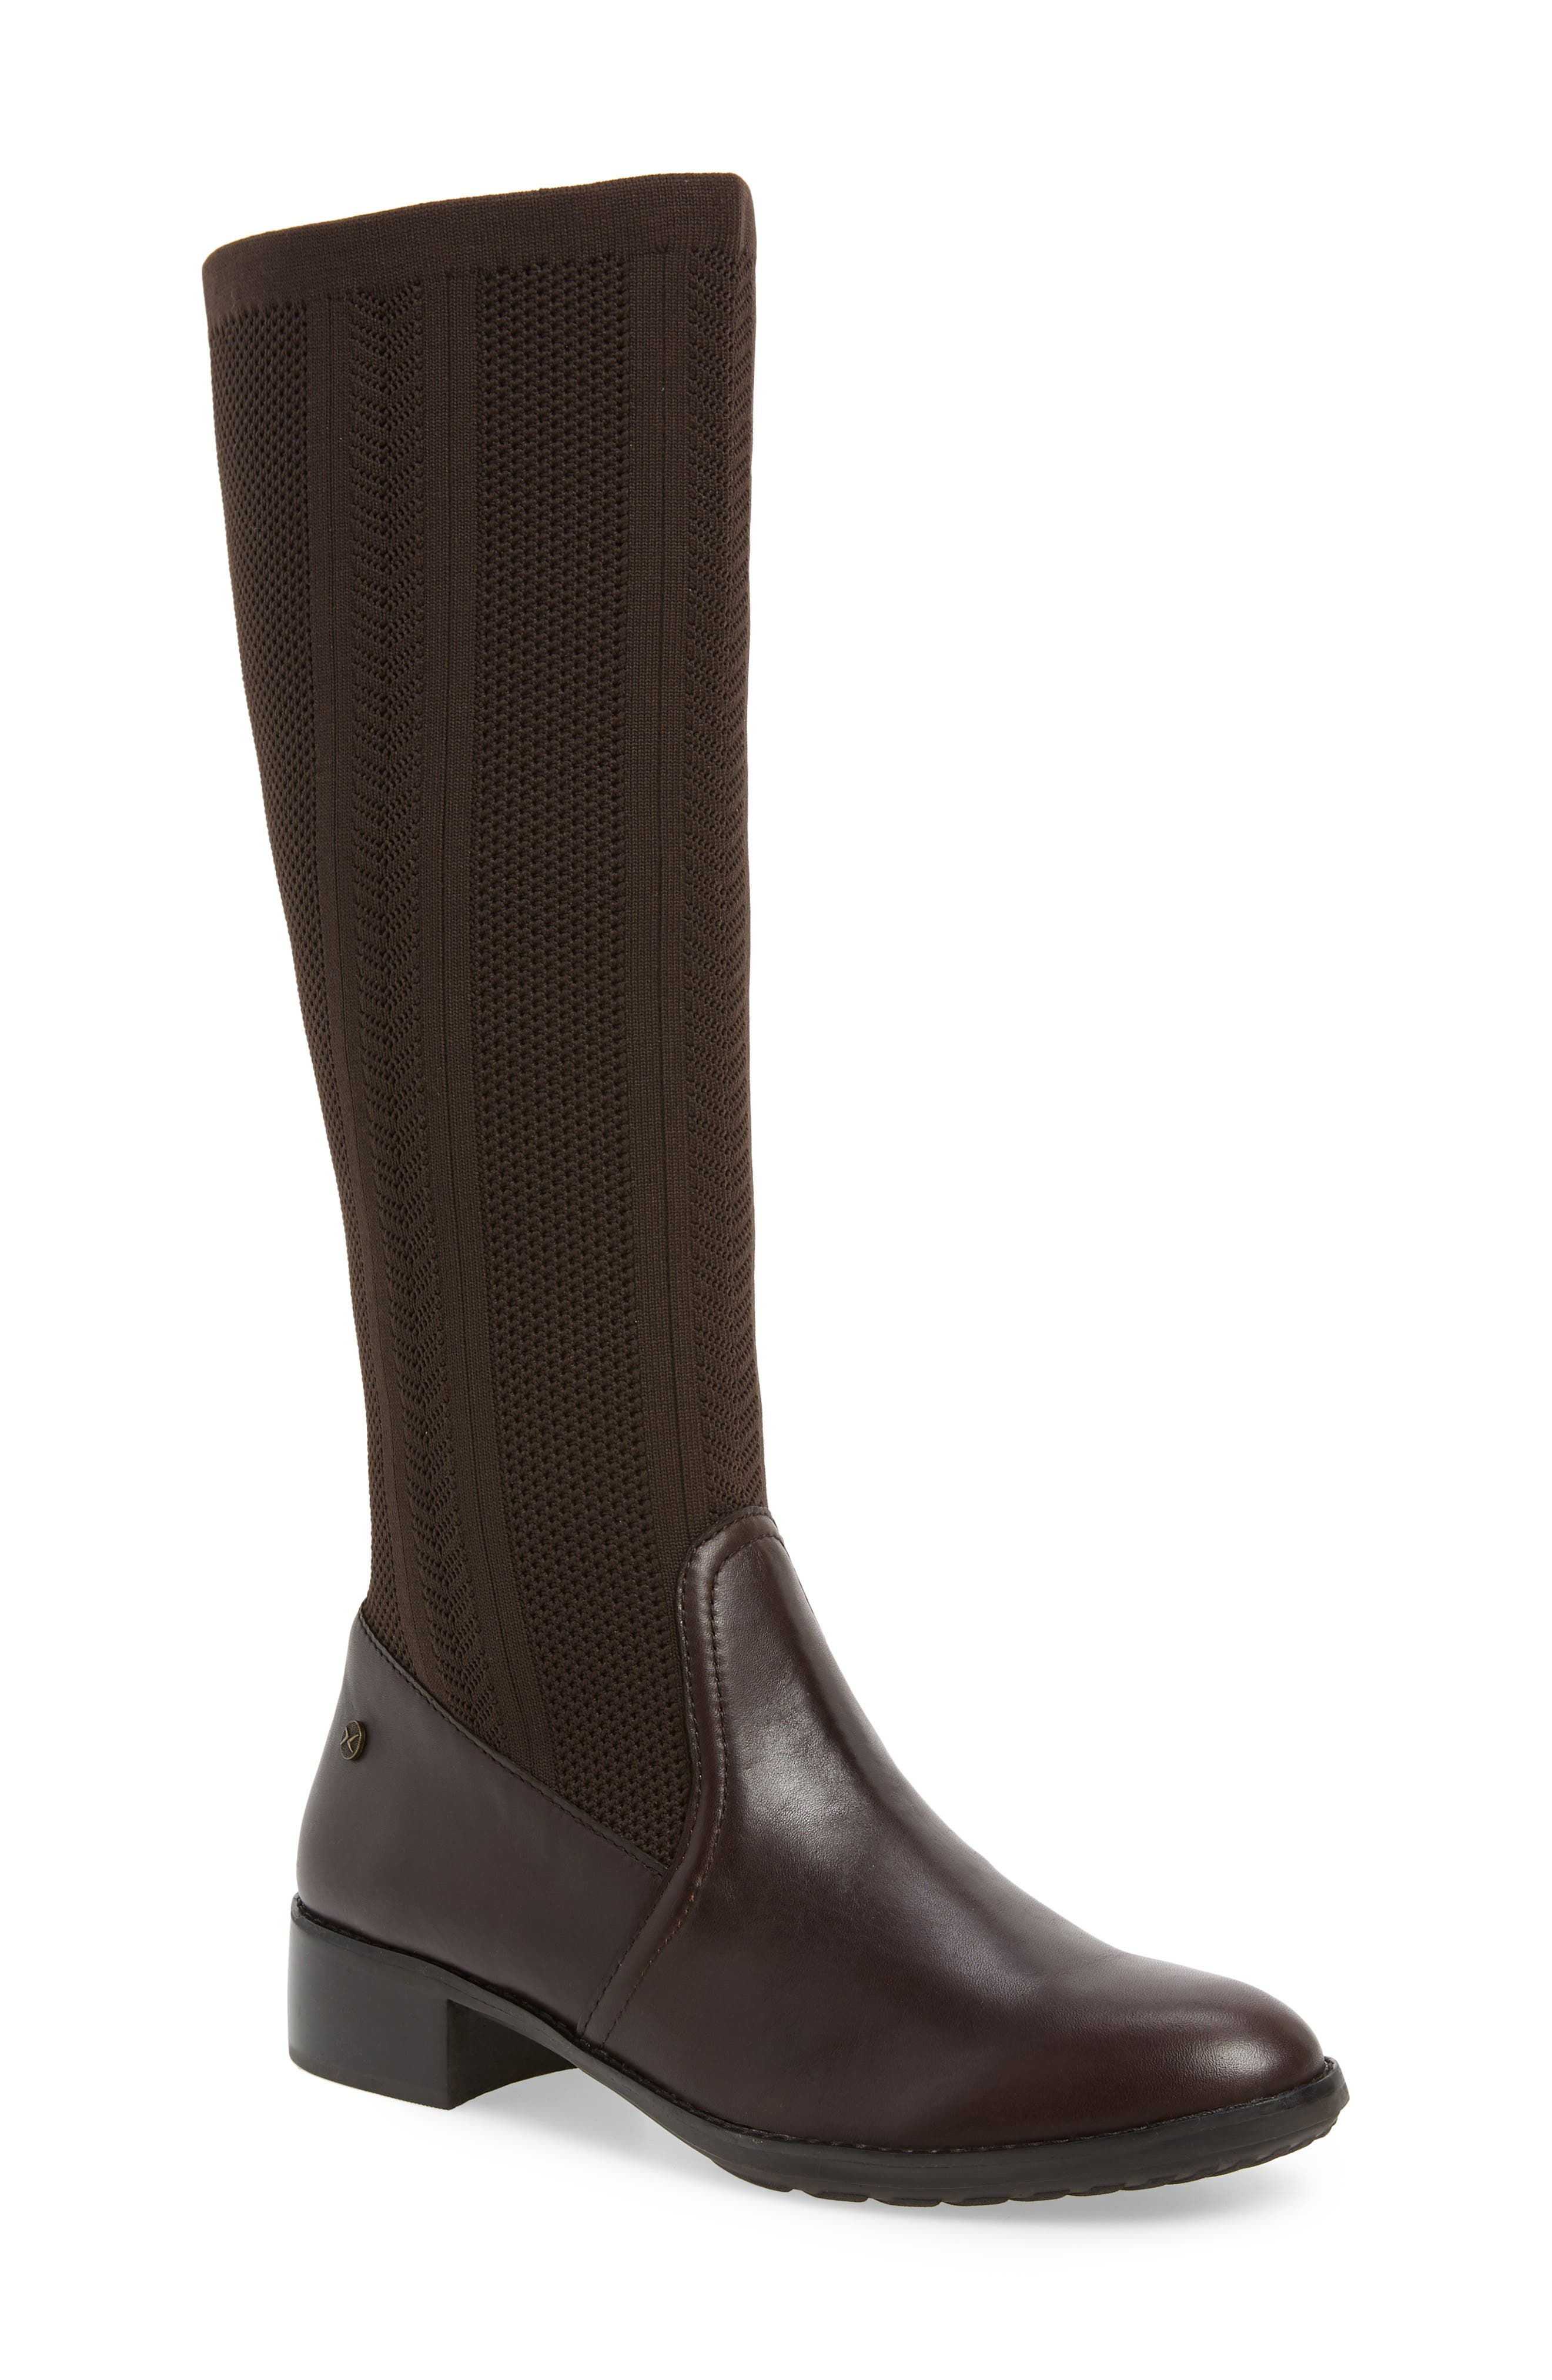 Aetrex Belle Sock Knit Shaft Boot - Brown